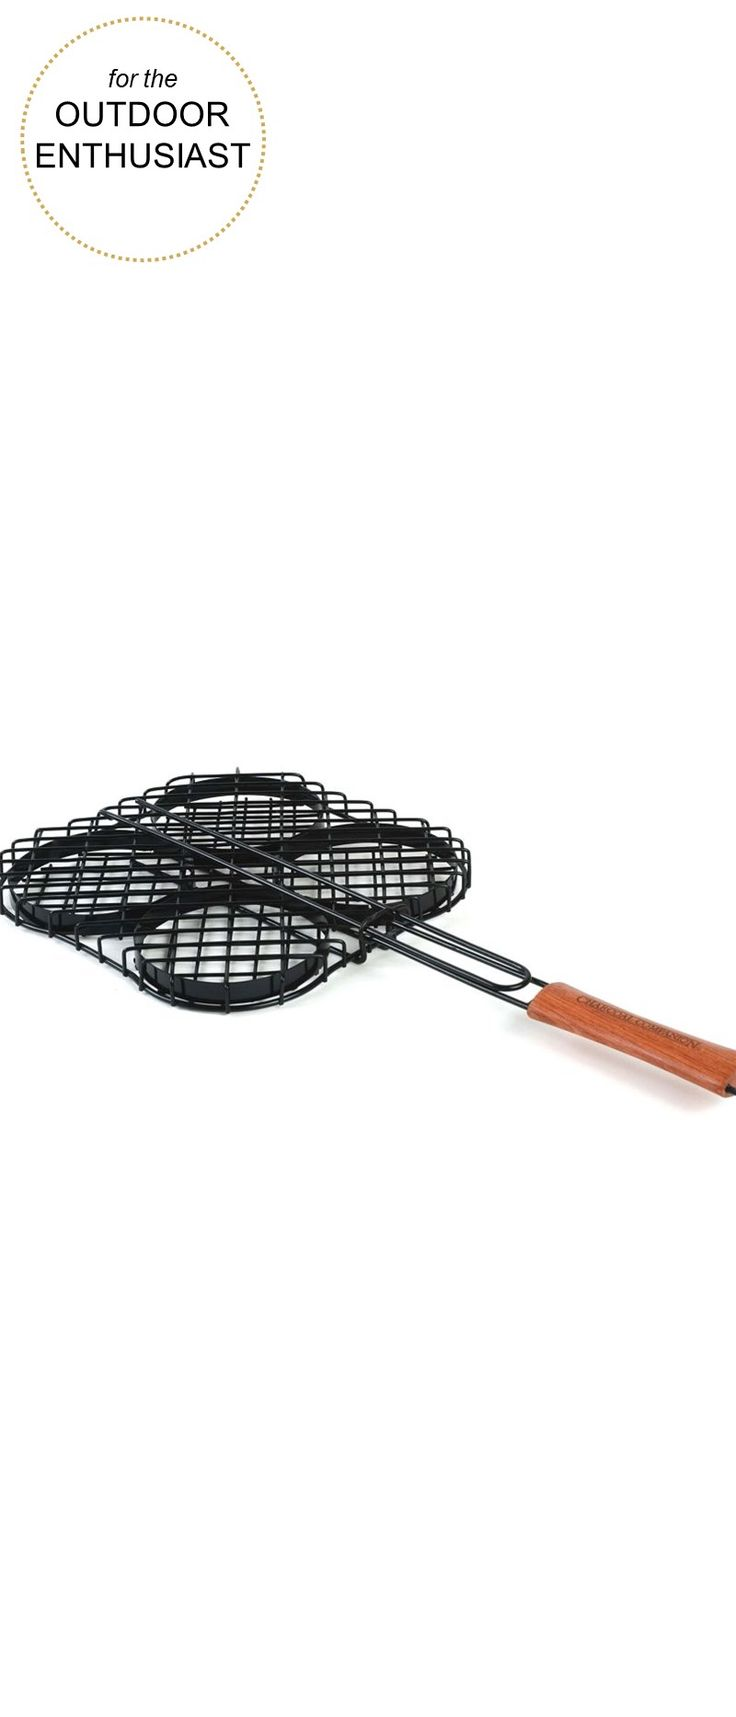 Gifts for the Outdoor Enthusiast |  Charcoal Companion® Hamburger Grilling Basket | Very Merry Gift Guide